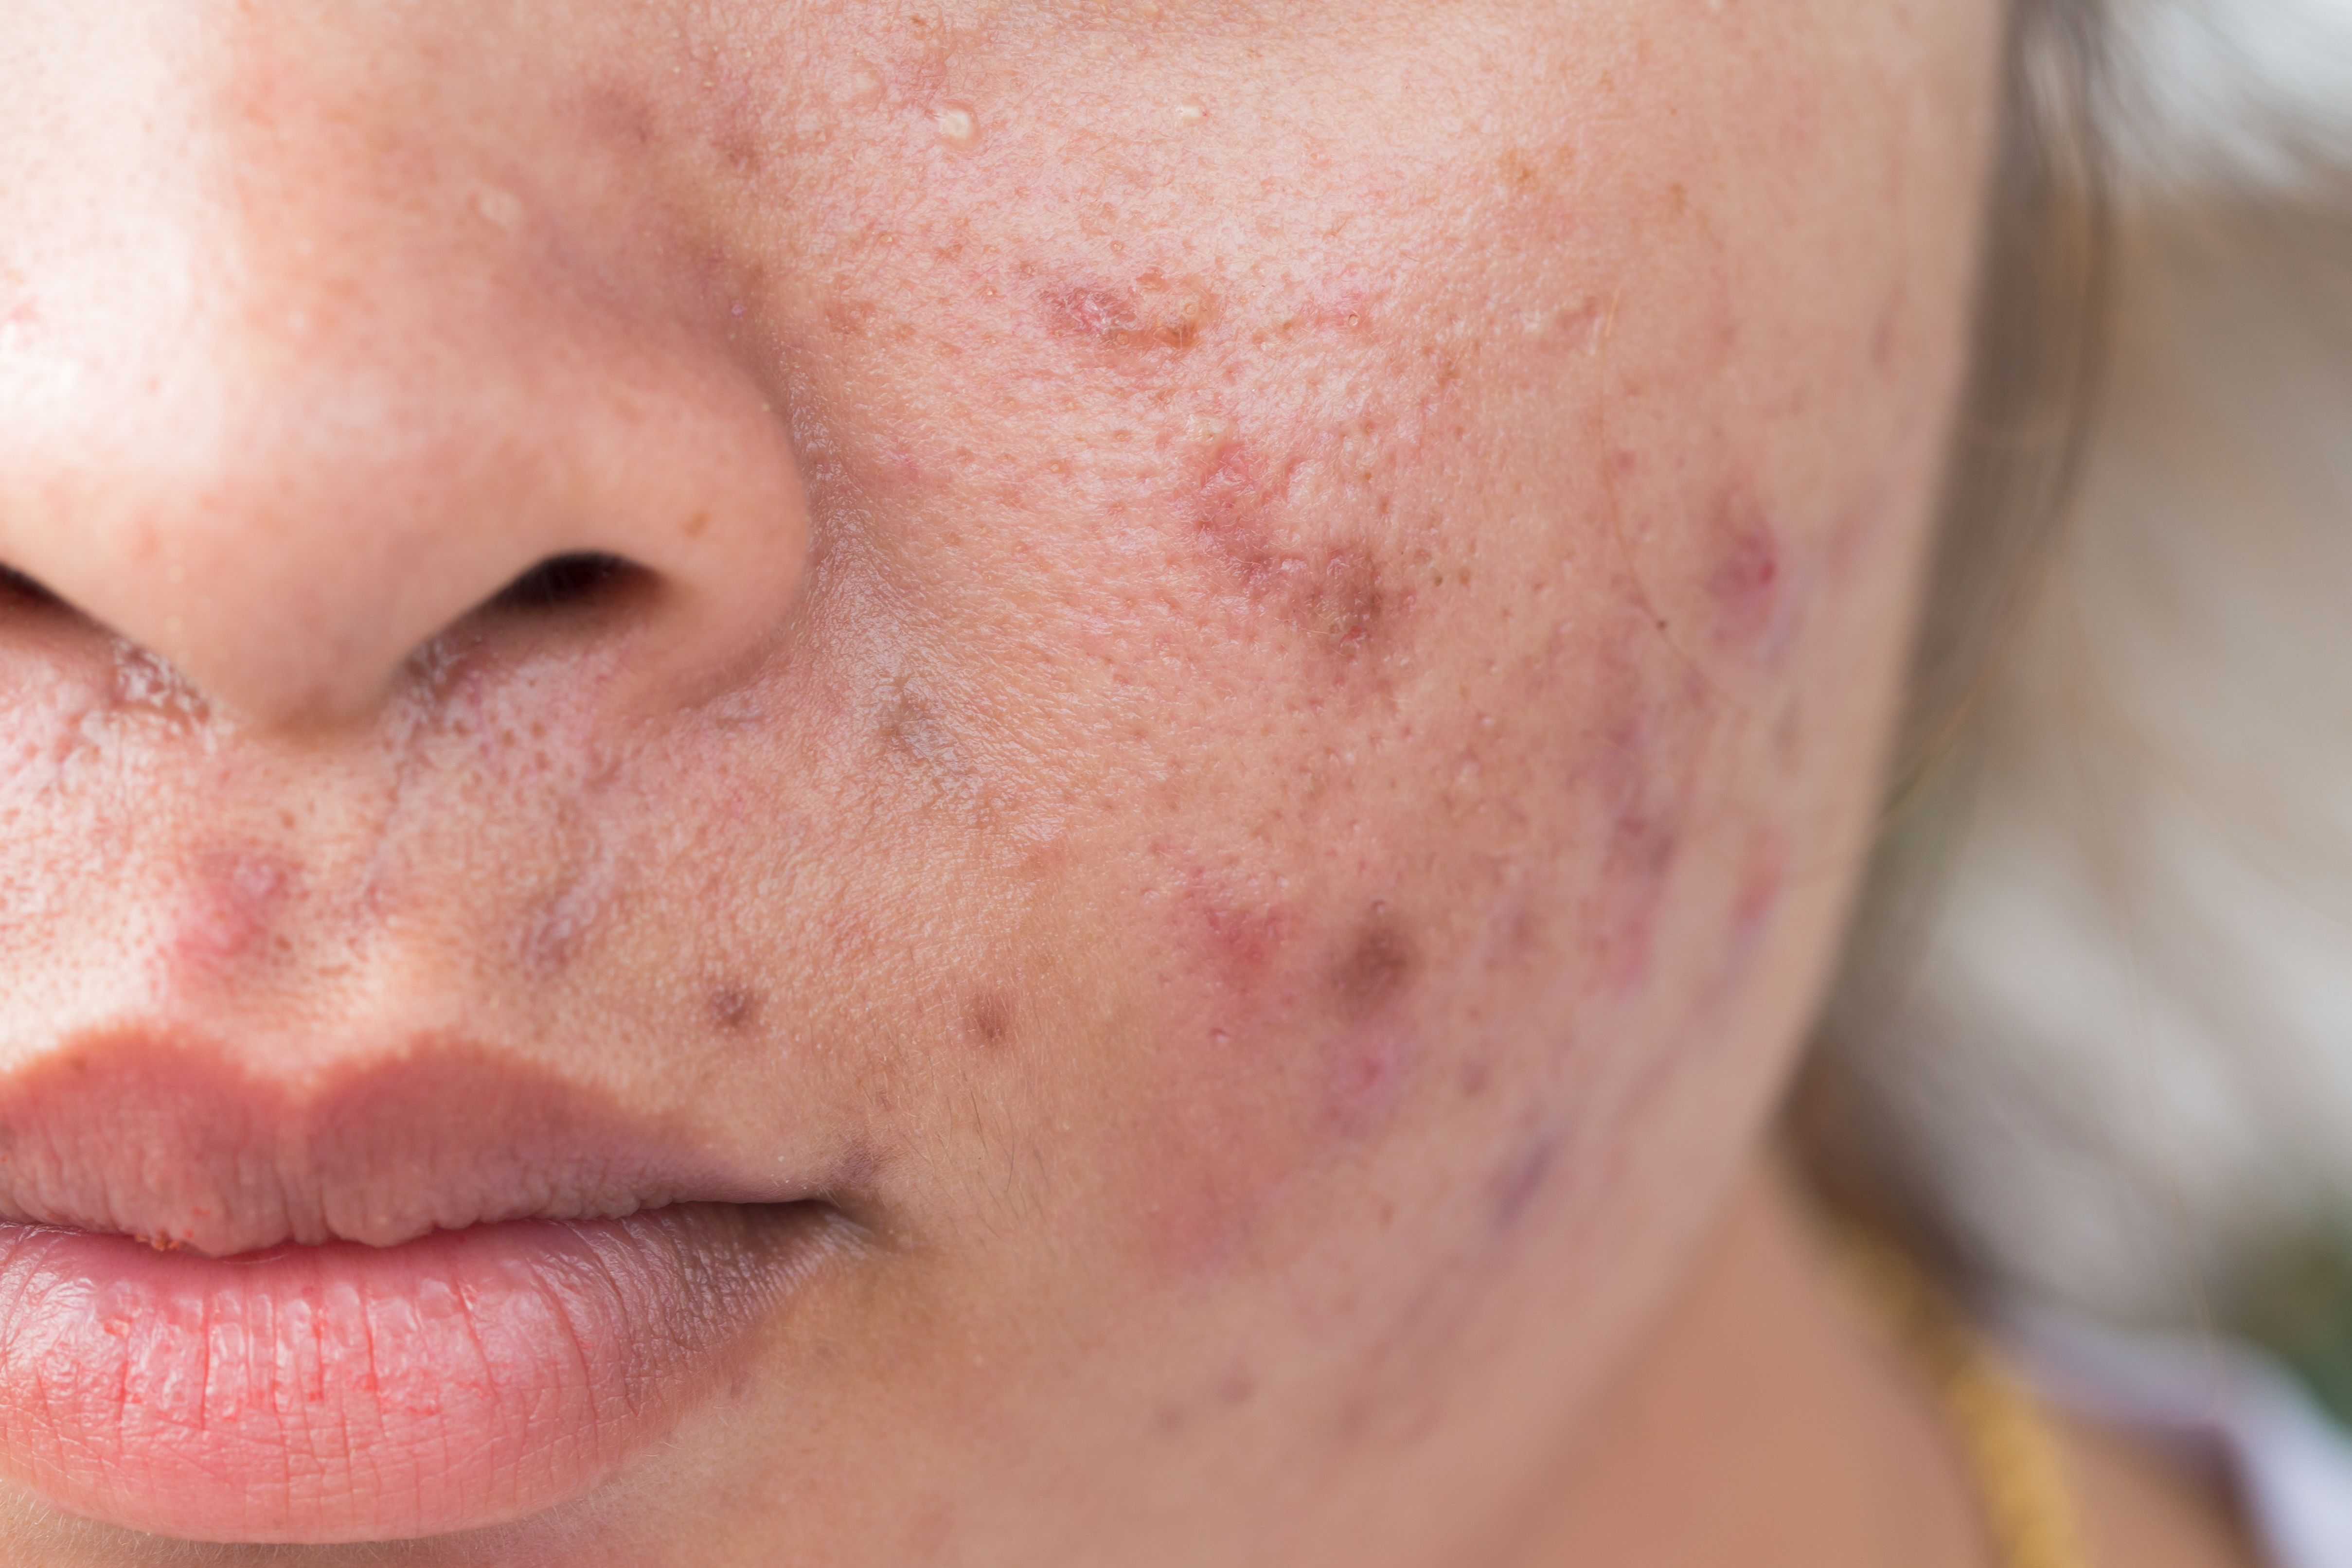 Minocycline As Foam Topical Under Study In Acne